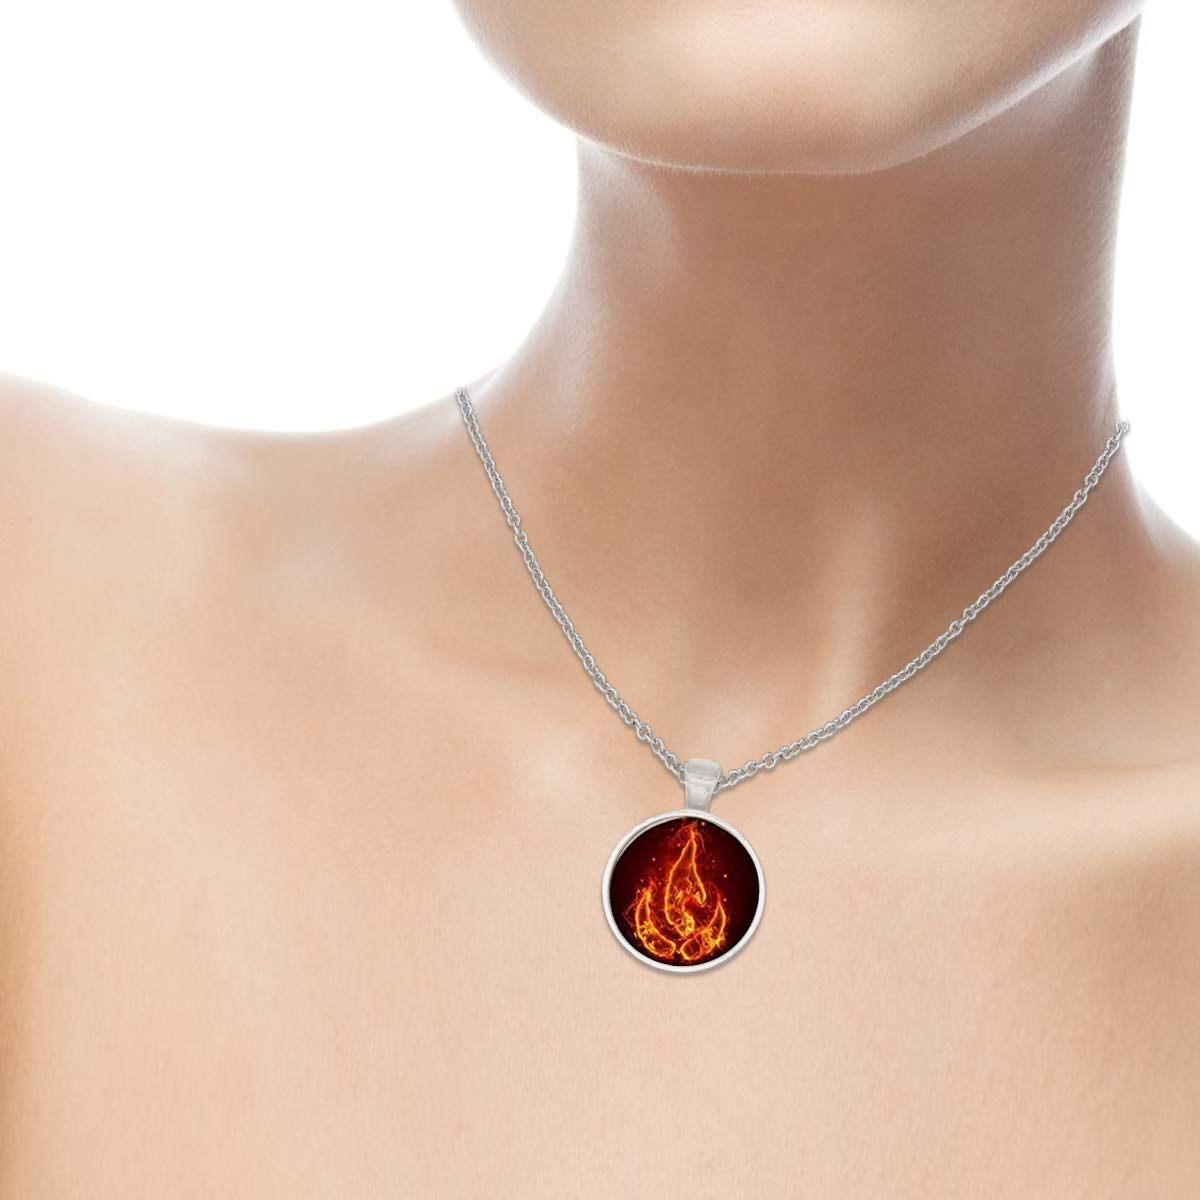 Family Decor Fire Nations Symbol Pendant Necklace Cabochon Glass Vintage Bronze Chain Necklace Jewelry Handmade